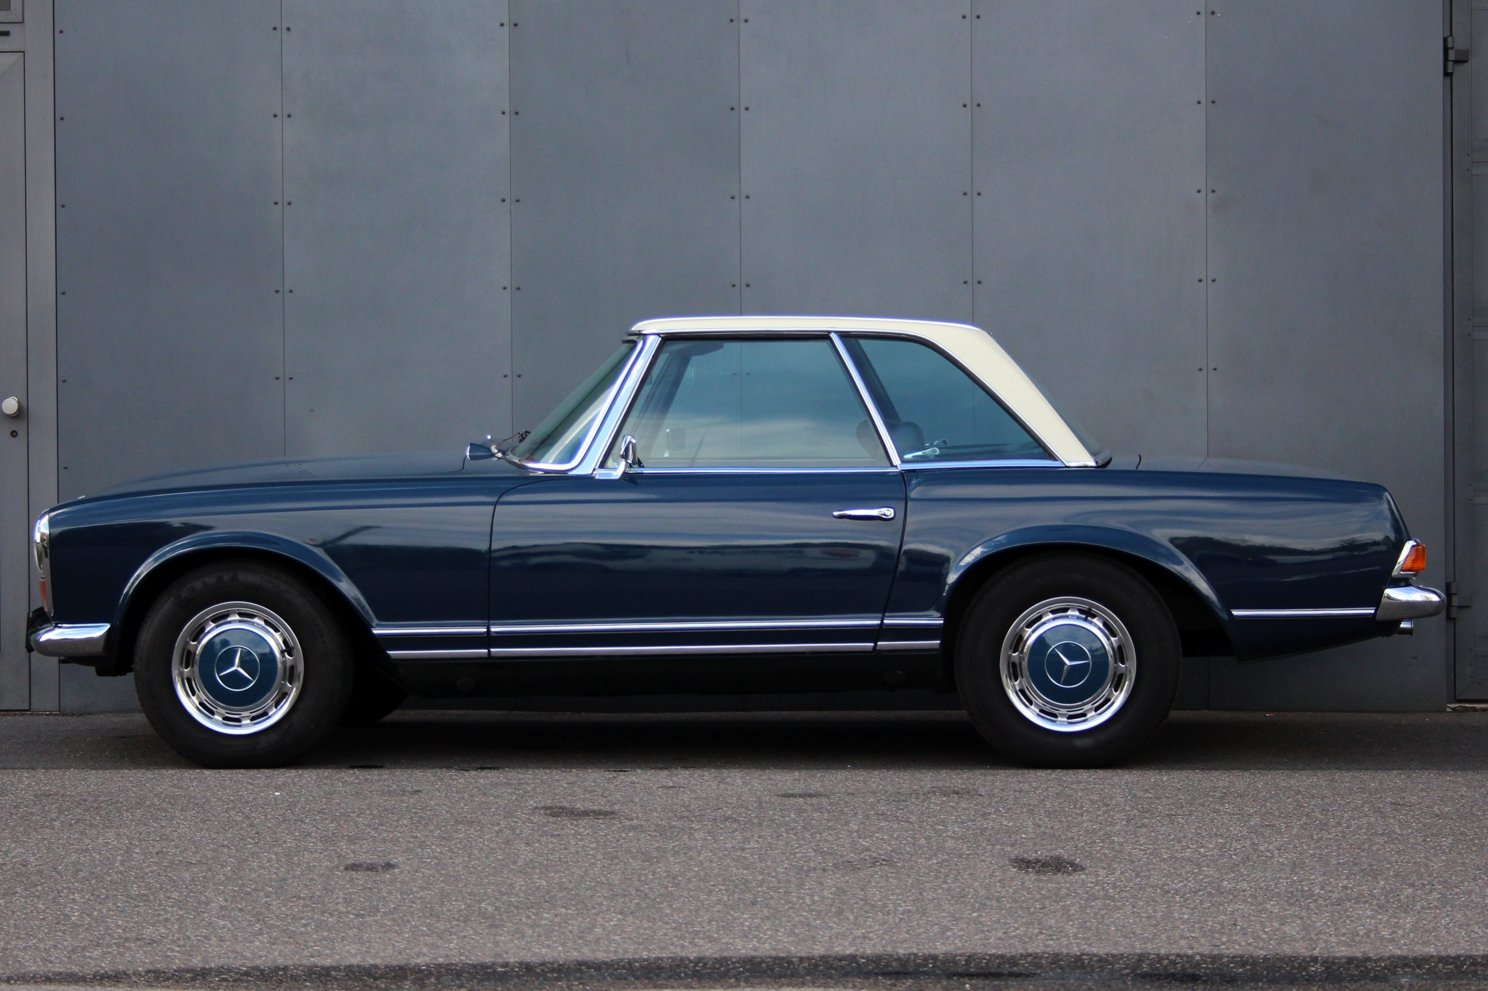 1963 Mercedes-Benz 280 SL Pagoda LHD (Automatic transmission) For Sale (picture 5 of 6)